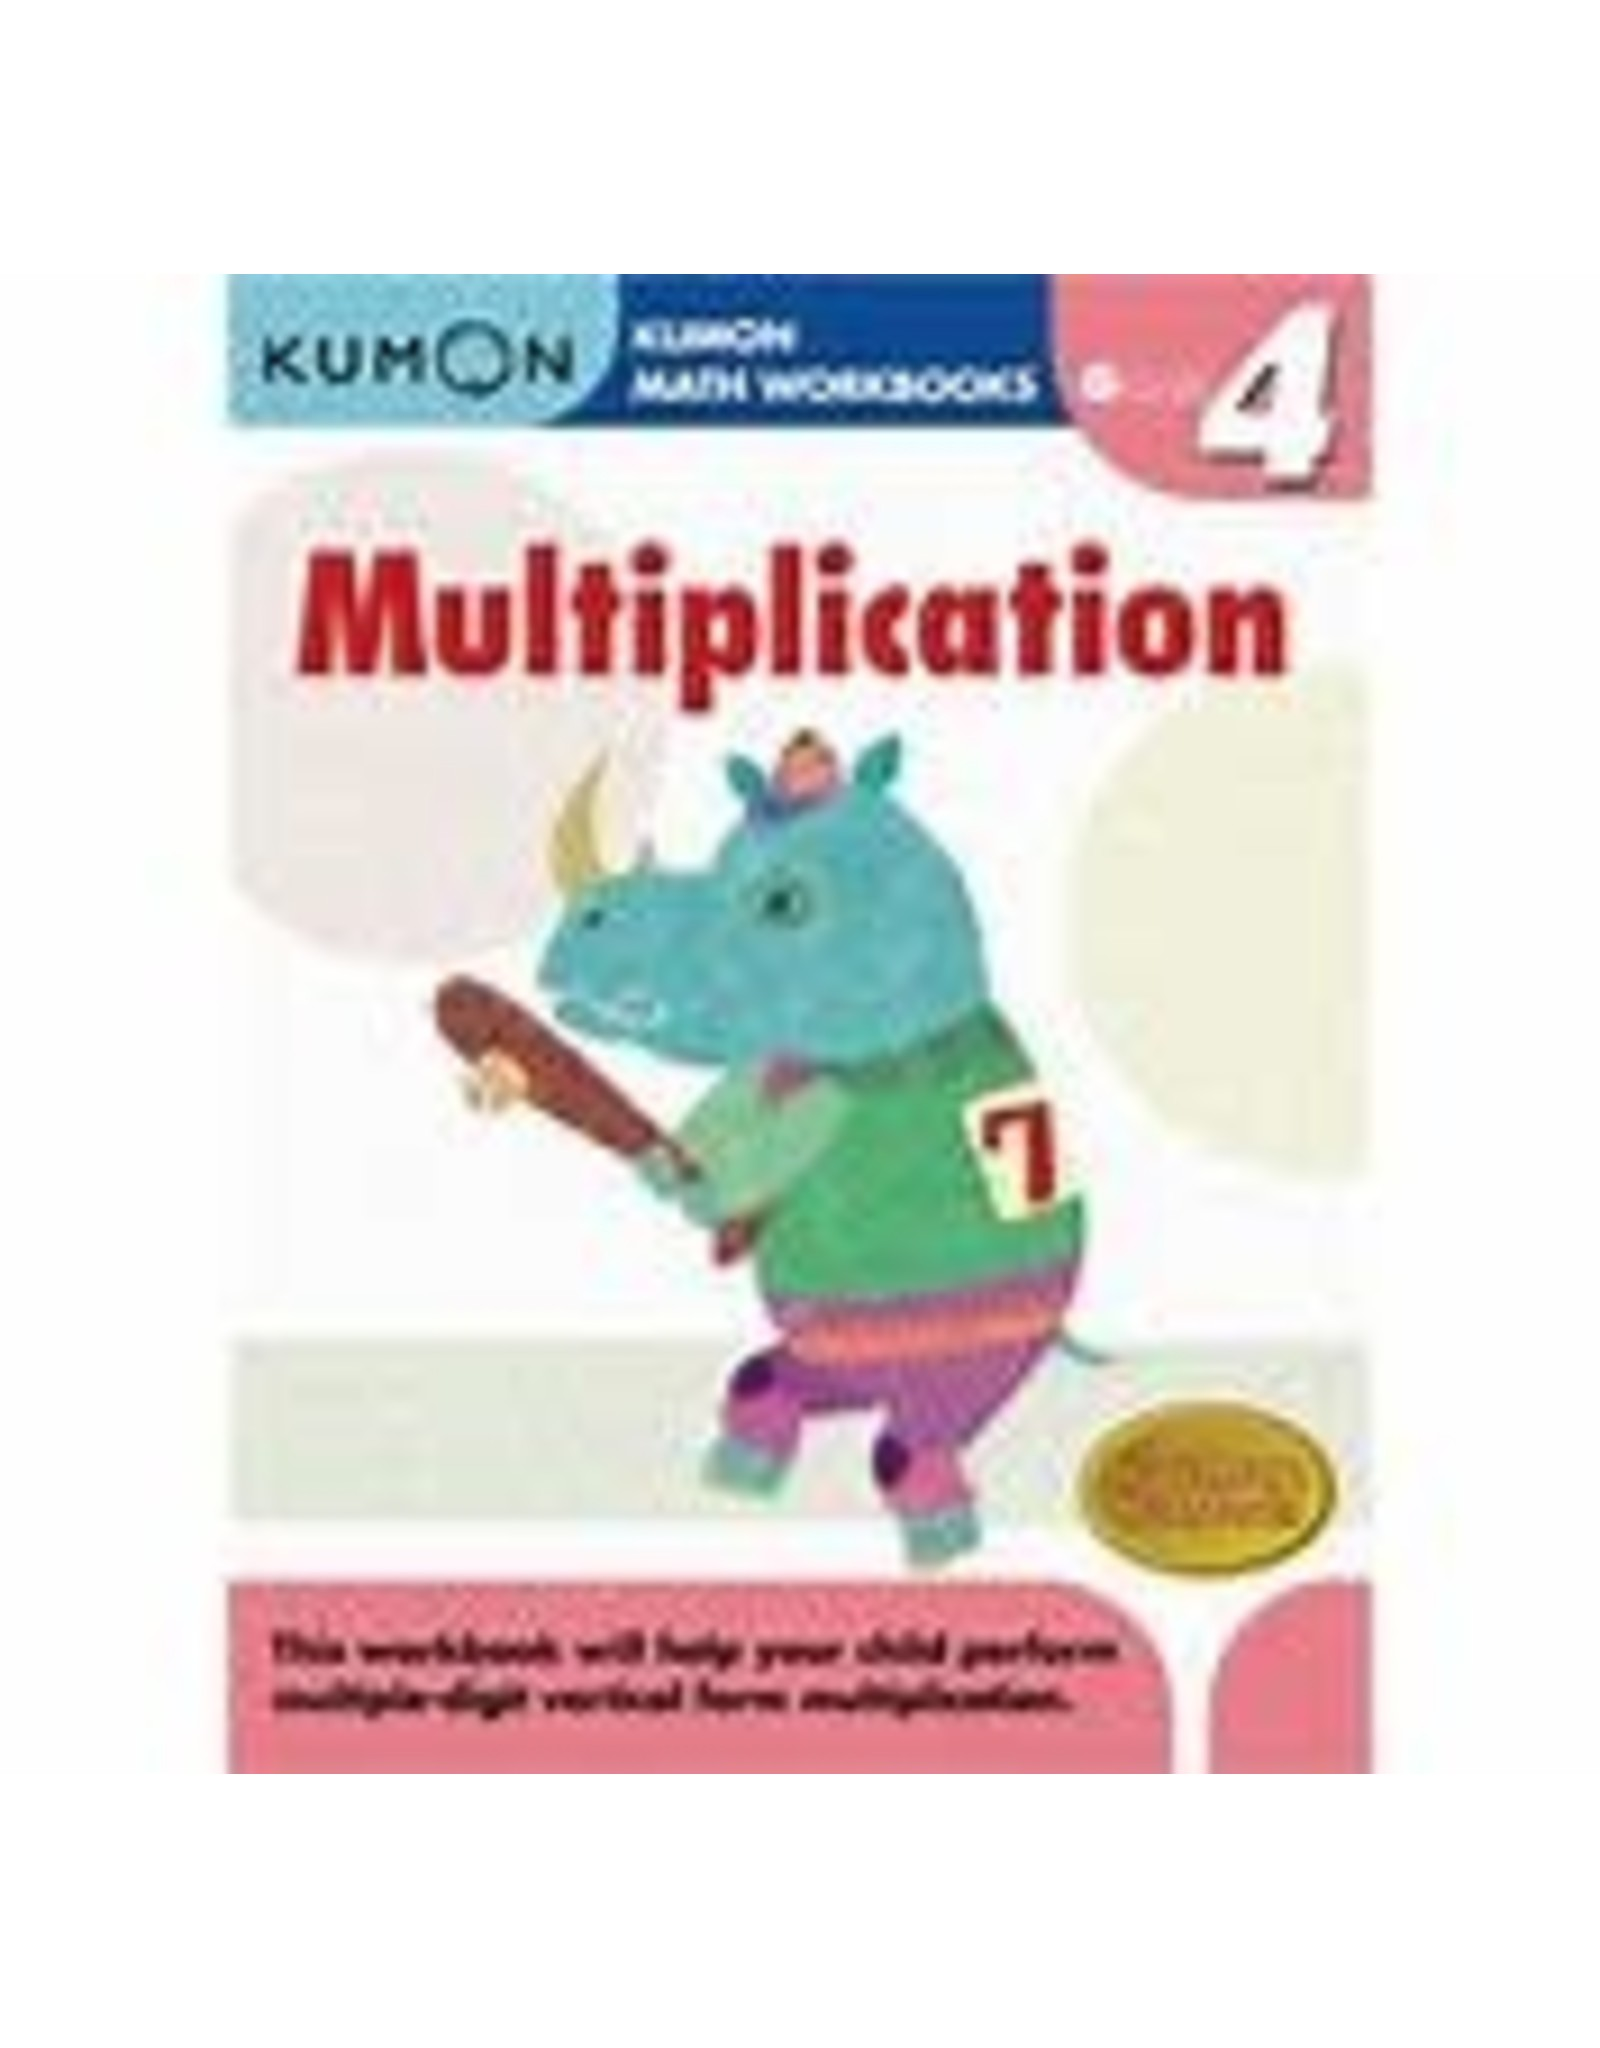 Kumon GRADE 4 MULTIPLICATION